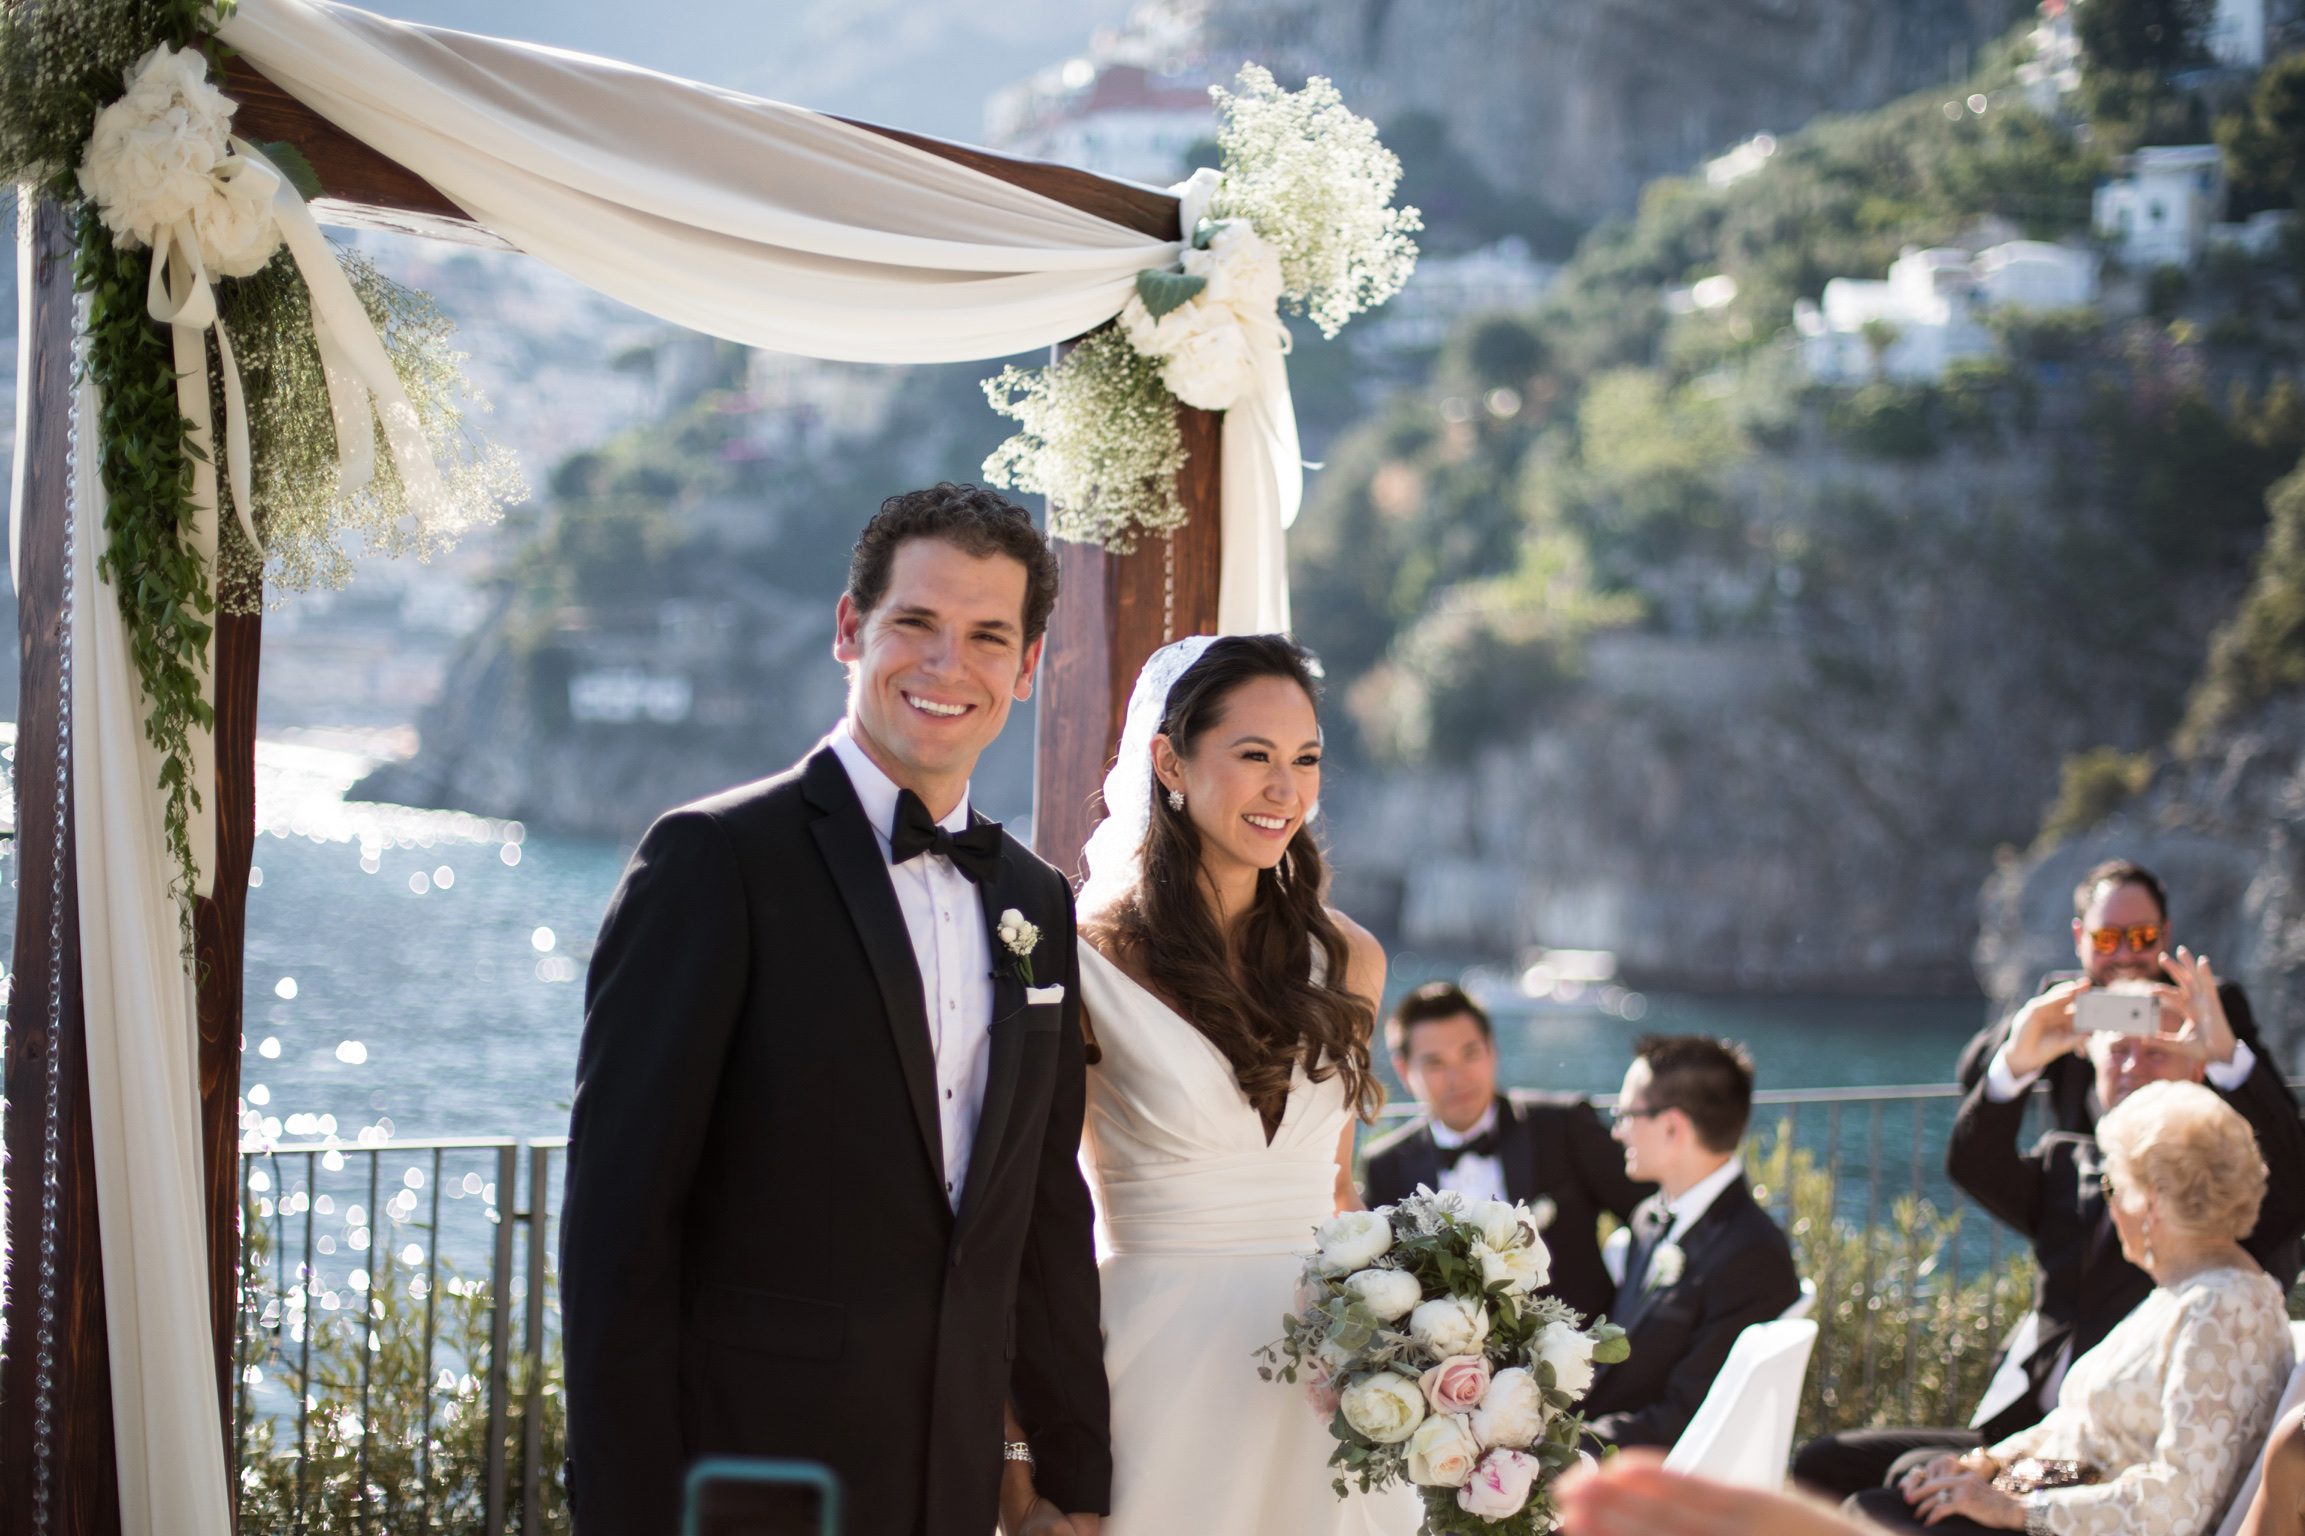 http://www.weddingamalfi.com/wp-content/uploads/Nathalie-and-Benjamin-wedding-in-Positano-8.jpg